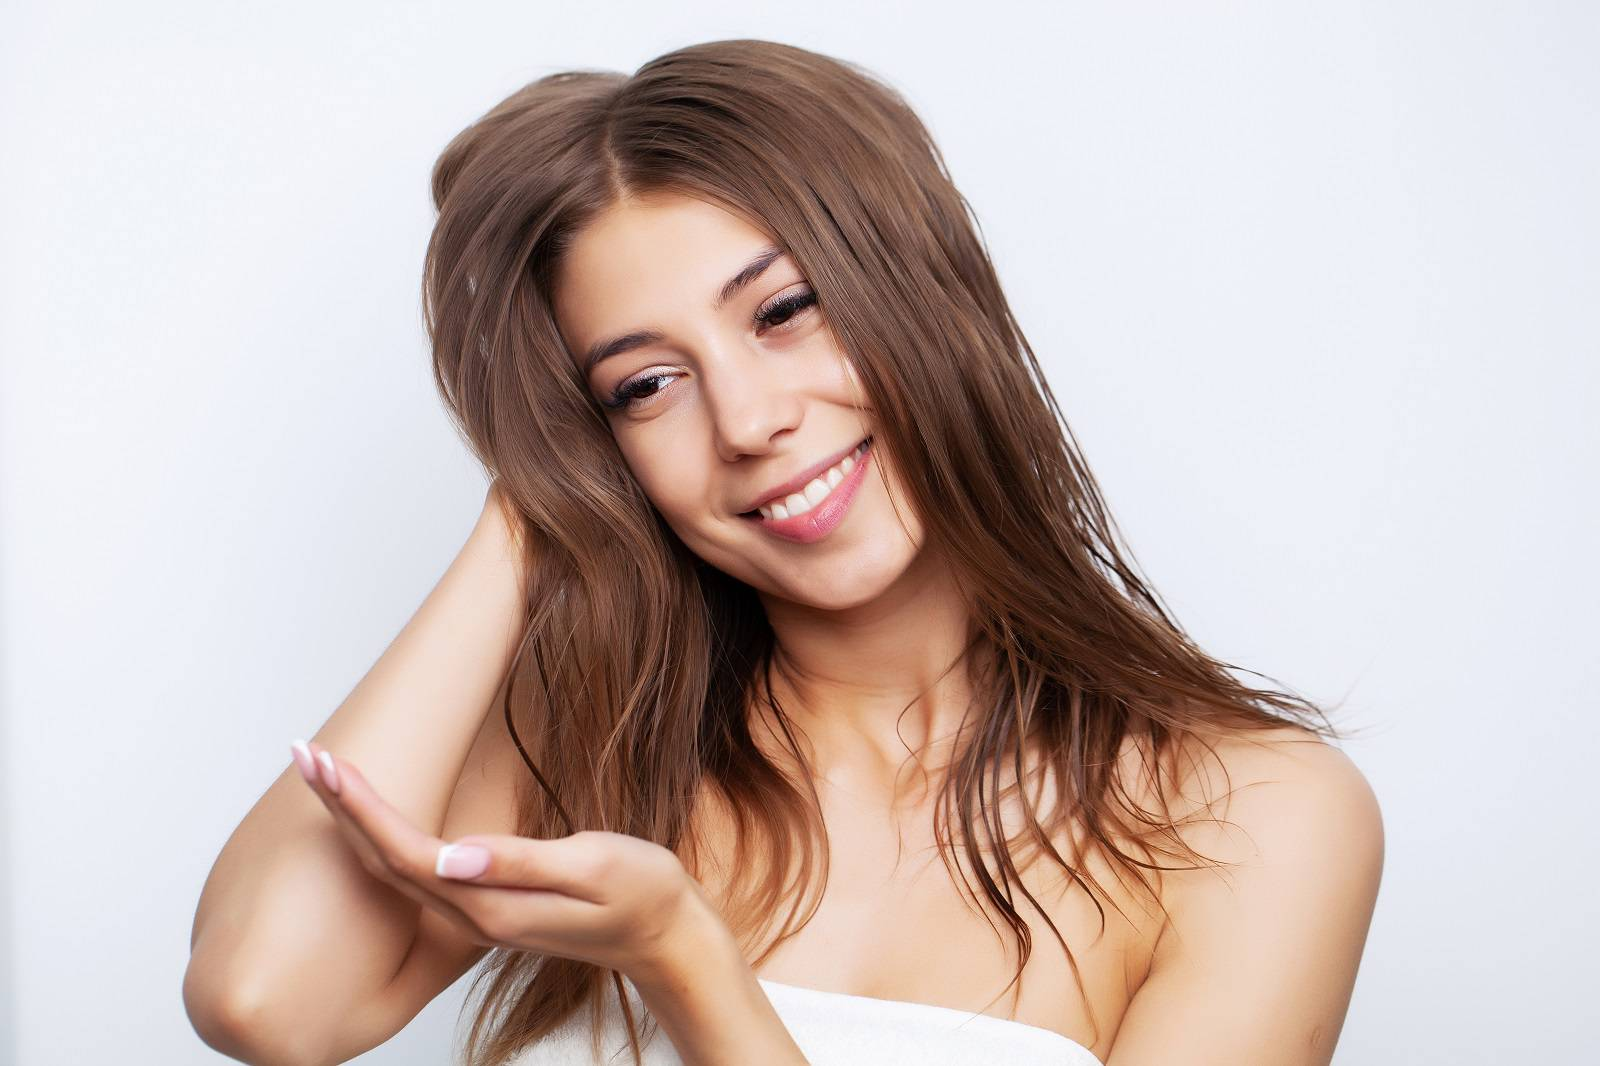 Young woman with luxurious hair applies conditioner for hair care.